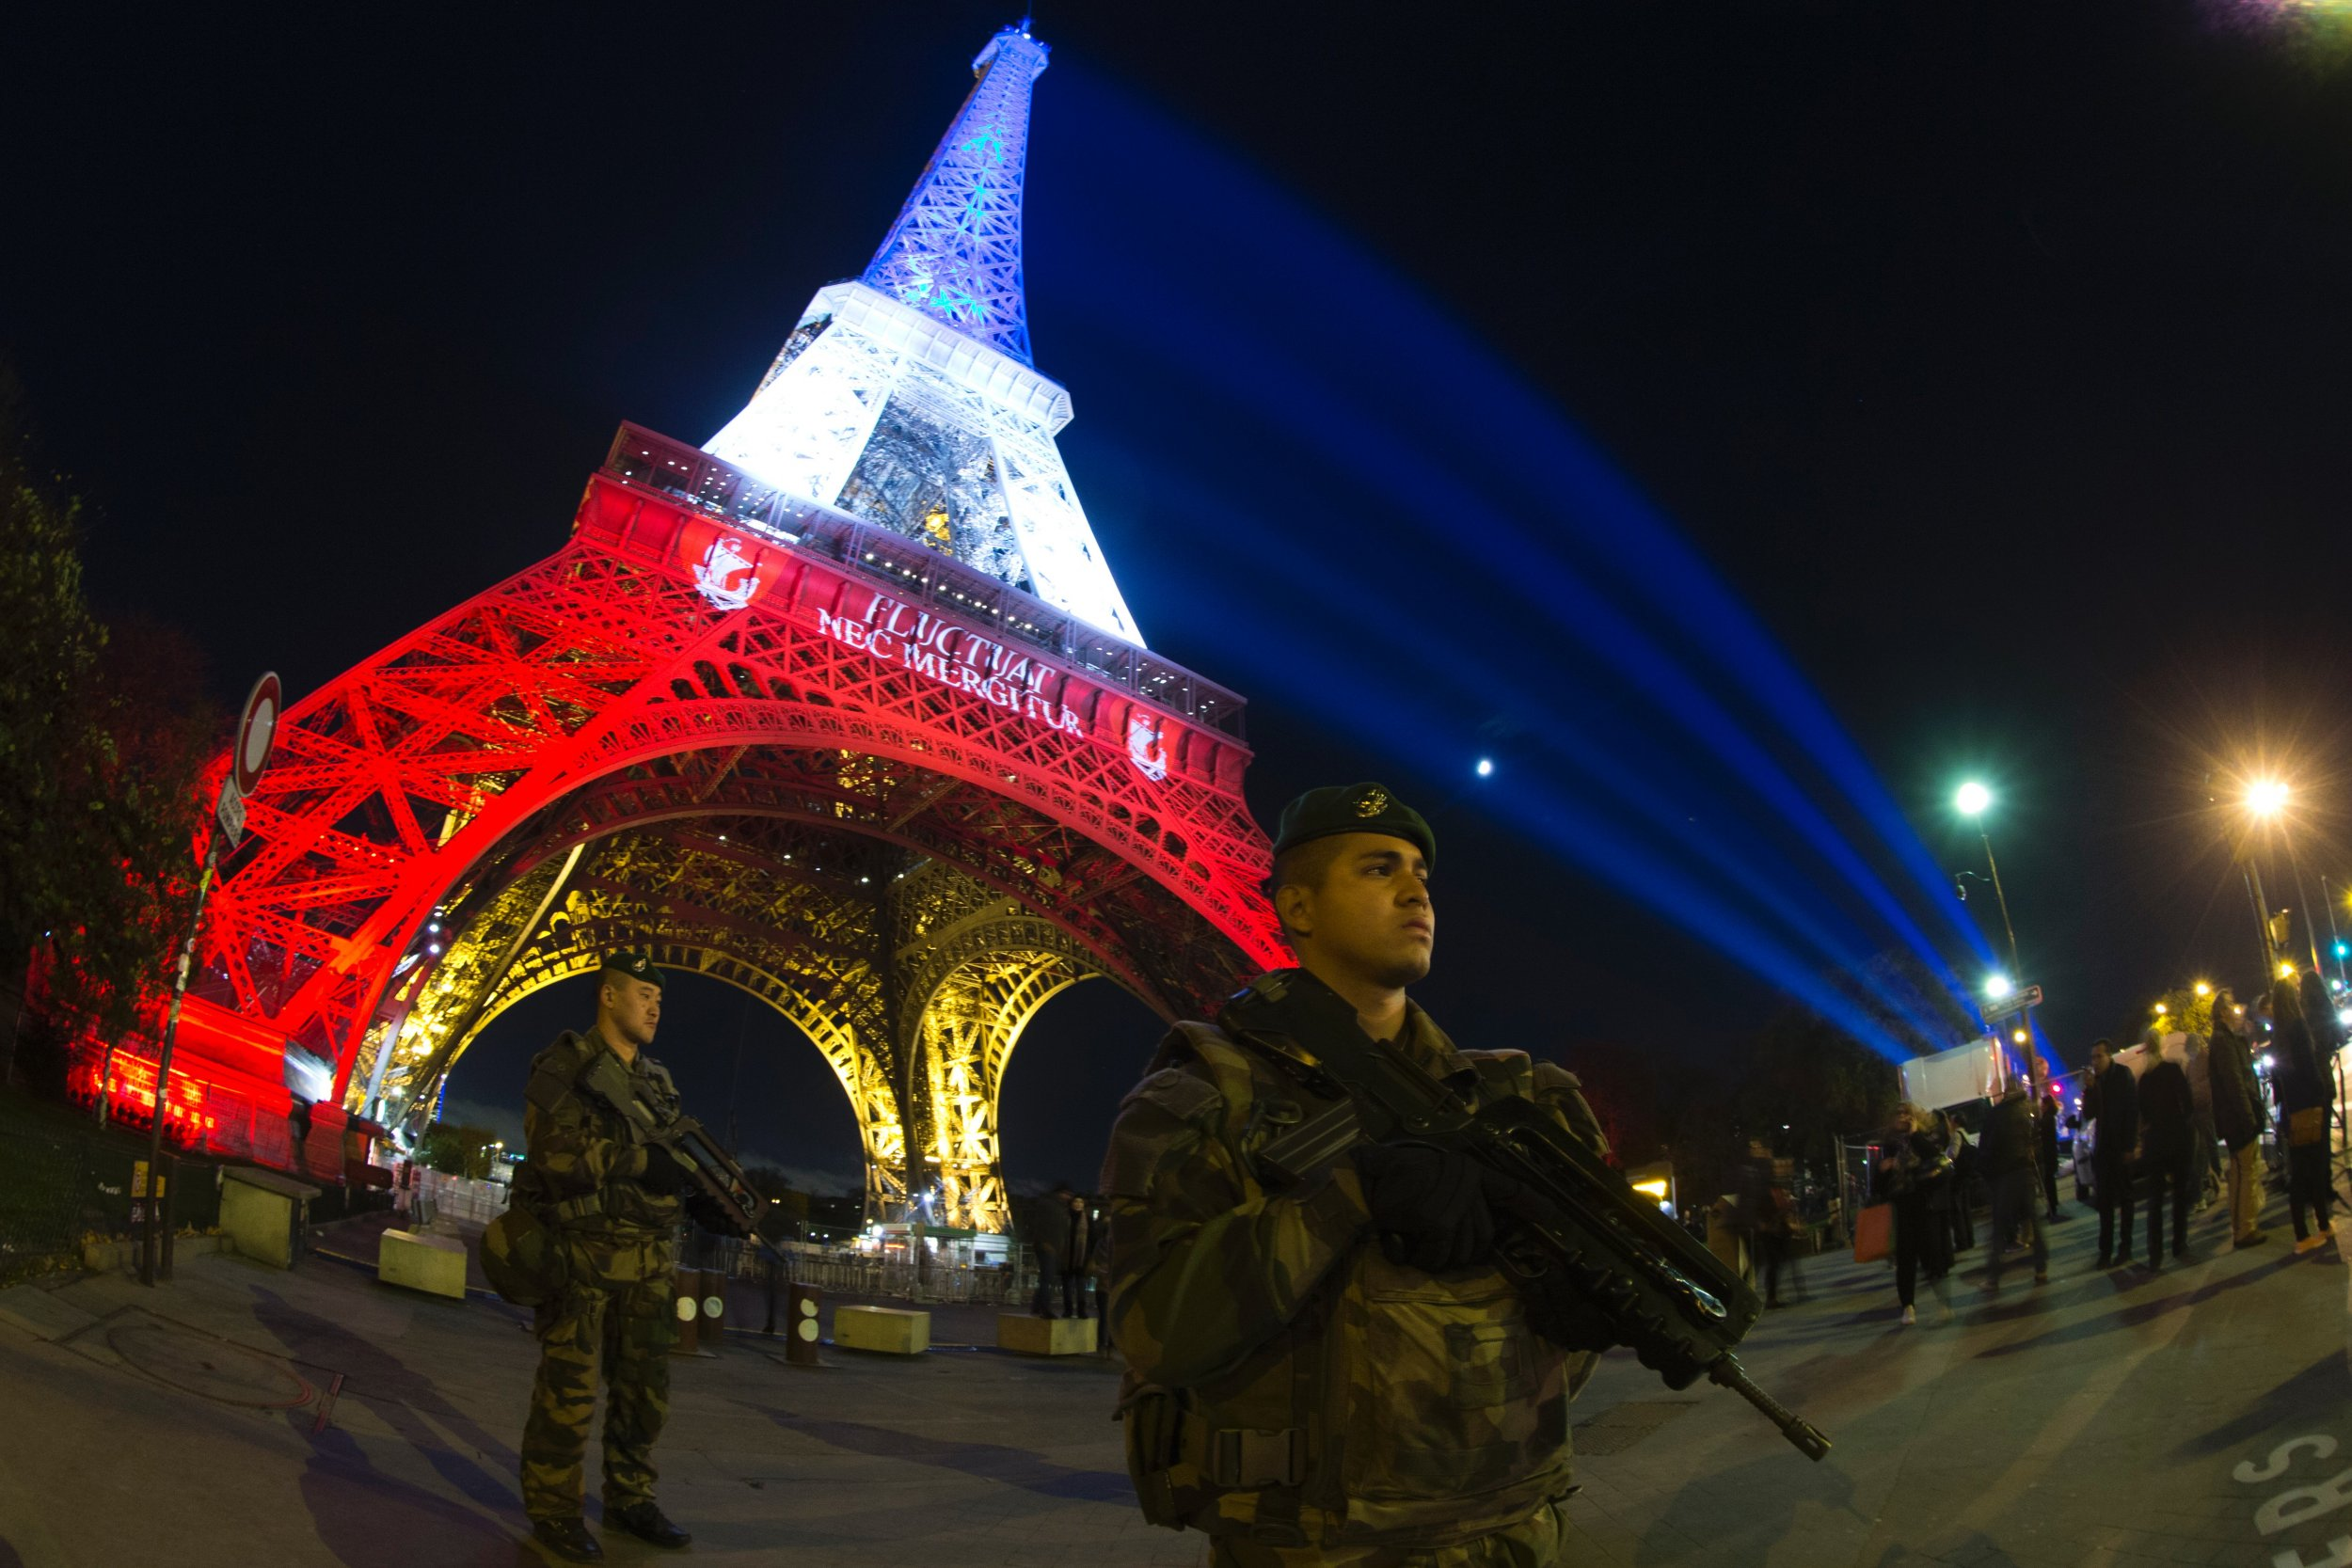 Paris attacks Eiffel Tower